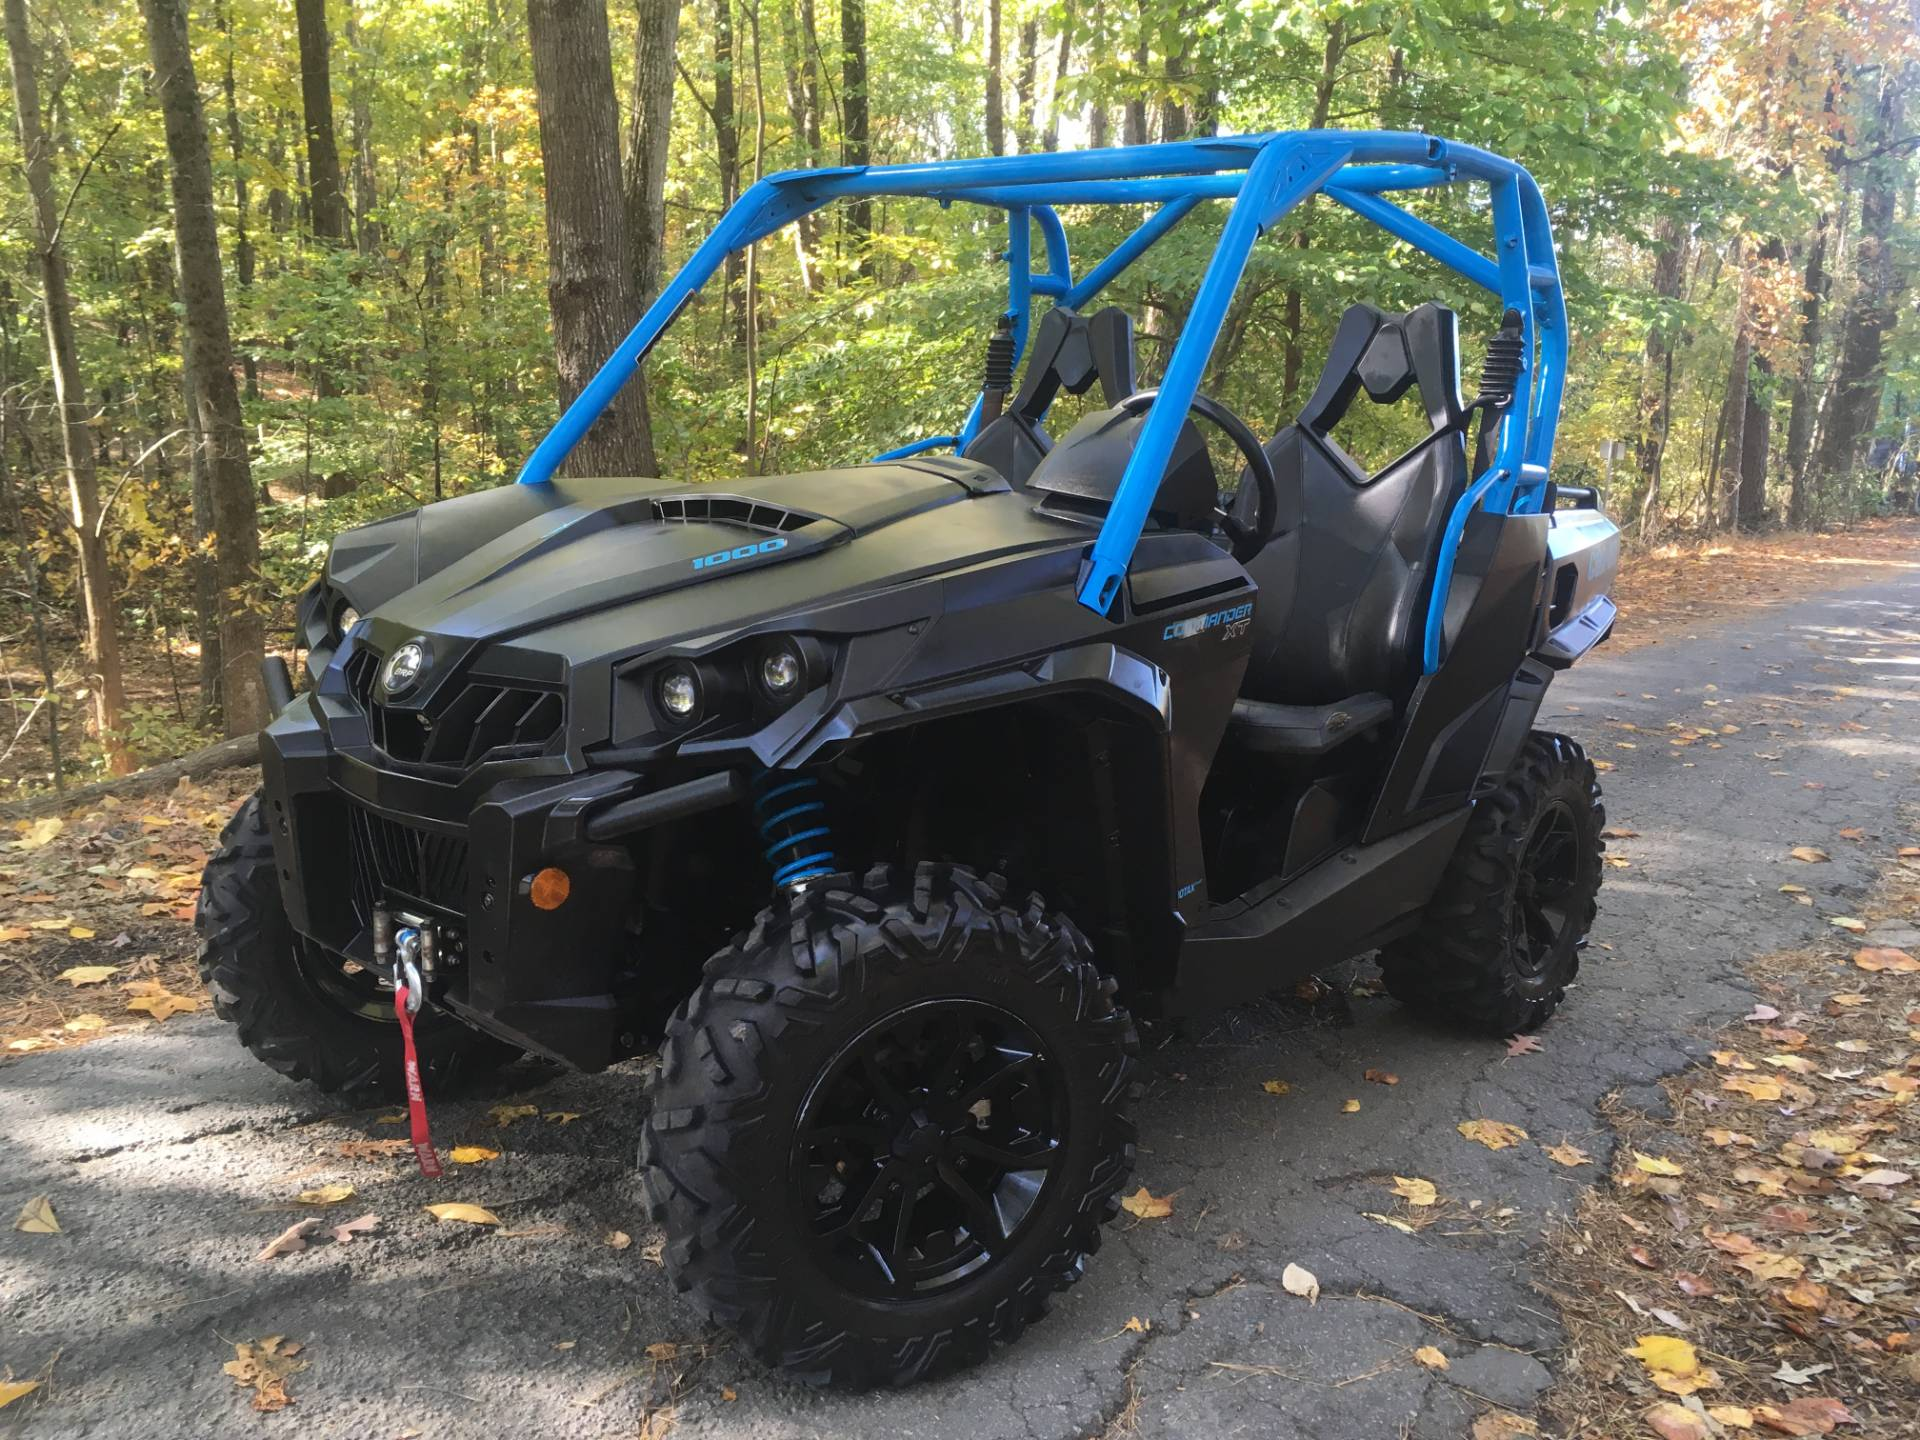 2016 CAN-AM COMMANDER 1000 XT in Woodstock, Georgia - Photo 2